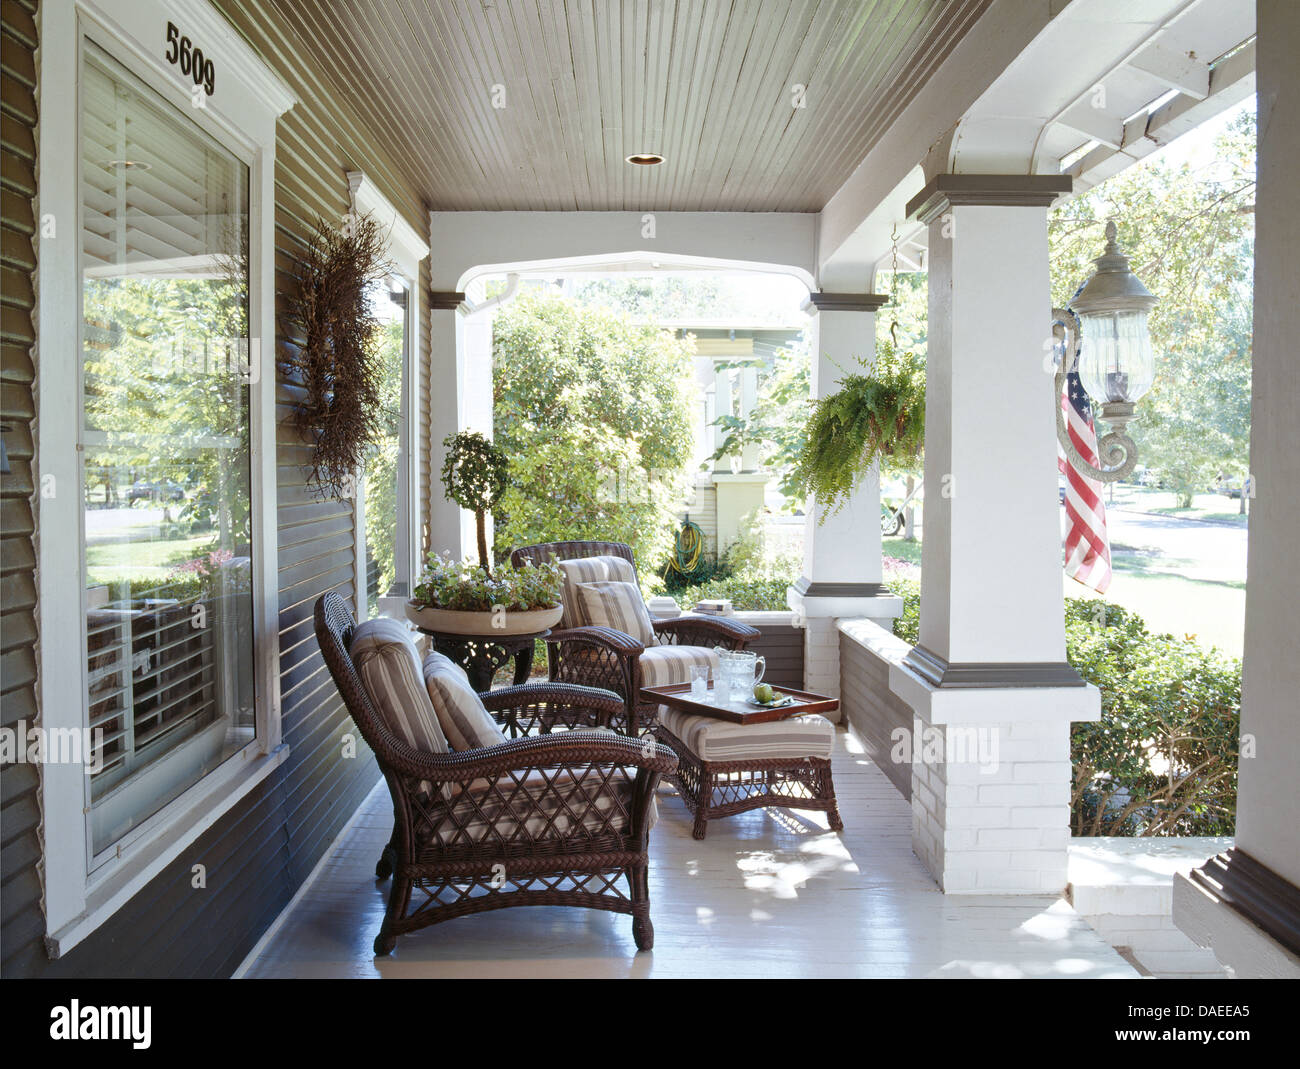 wicker armchairs on veranda of american colonial style house stock photo royalty free image. Black Bedroom Furniture Sets. Home Design Ideas